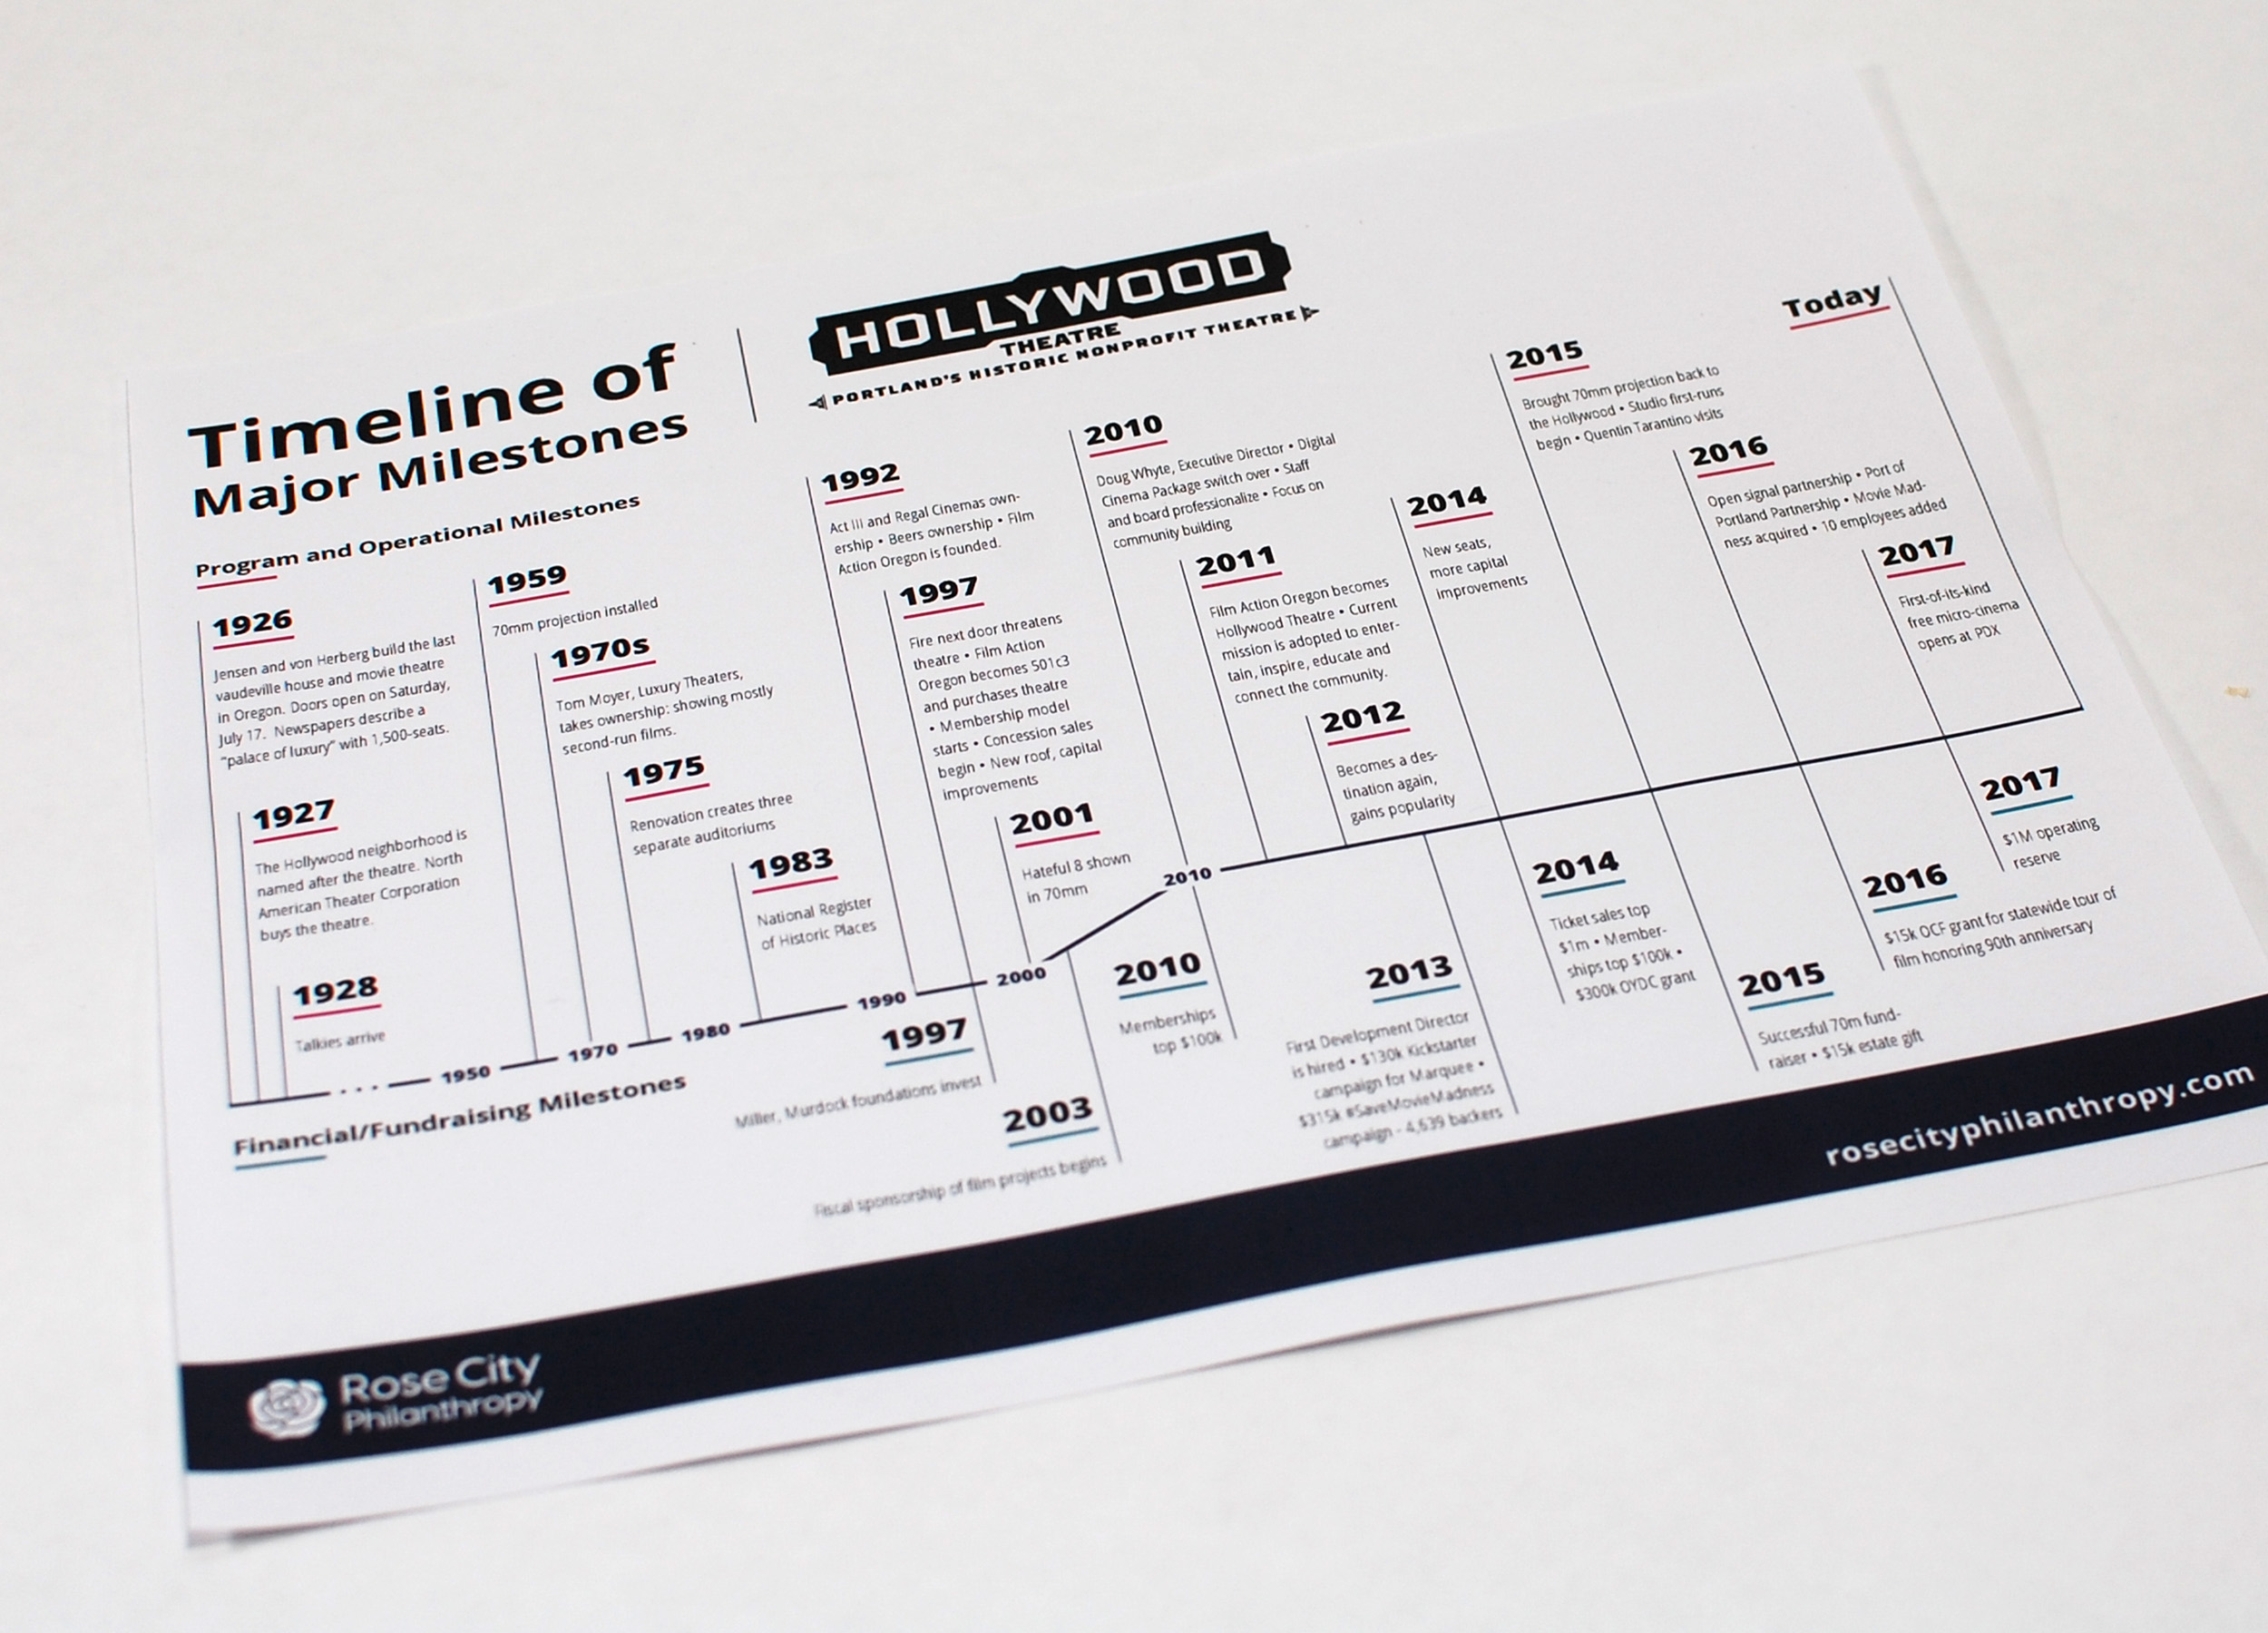 Timeline of Major Milestone for Hollywood Theatre